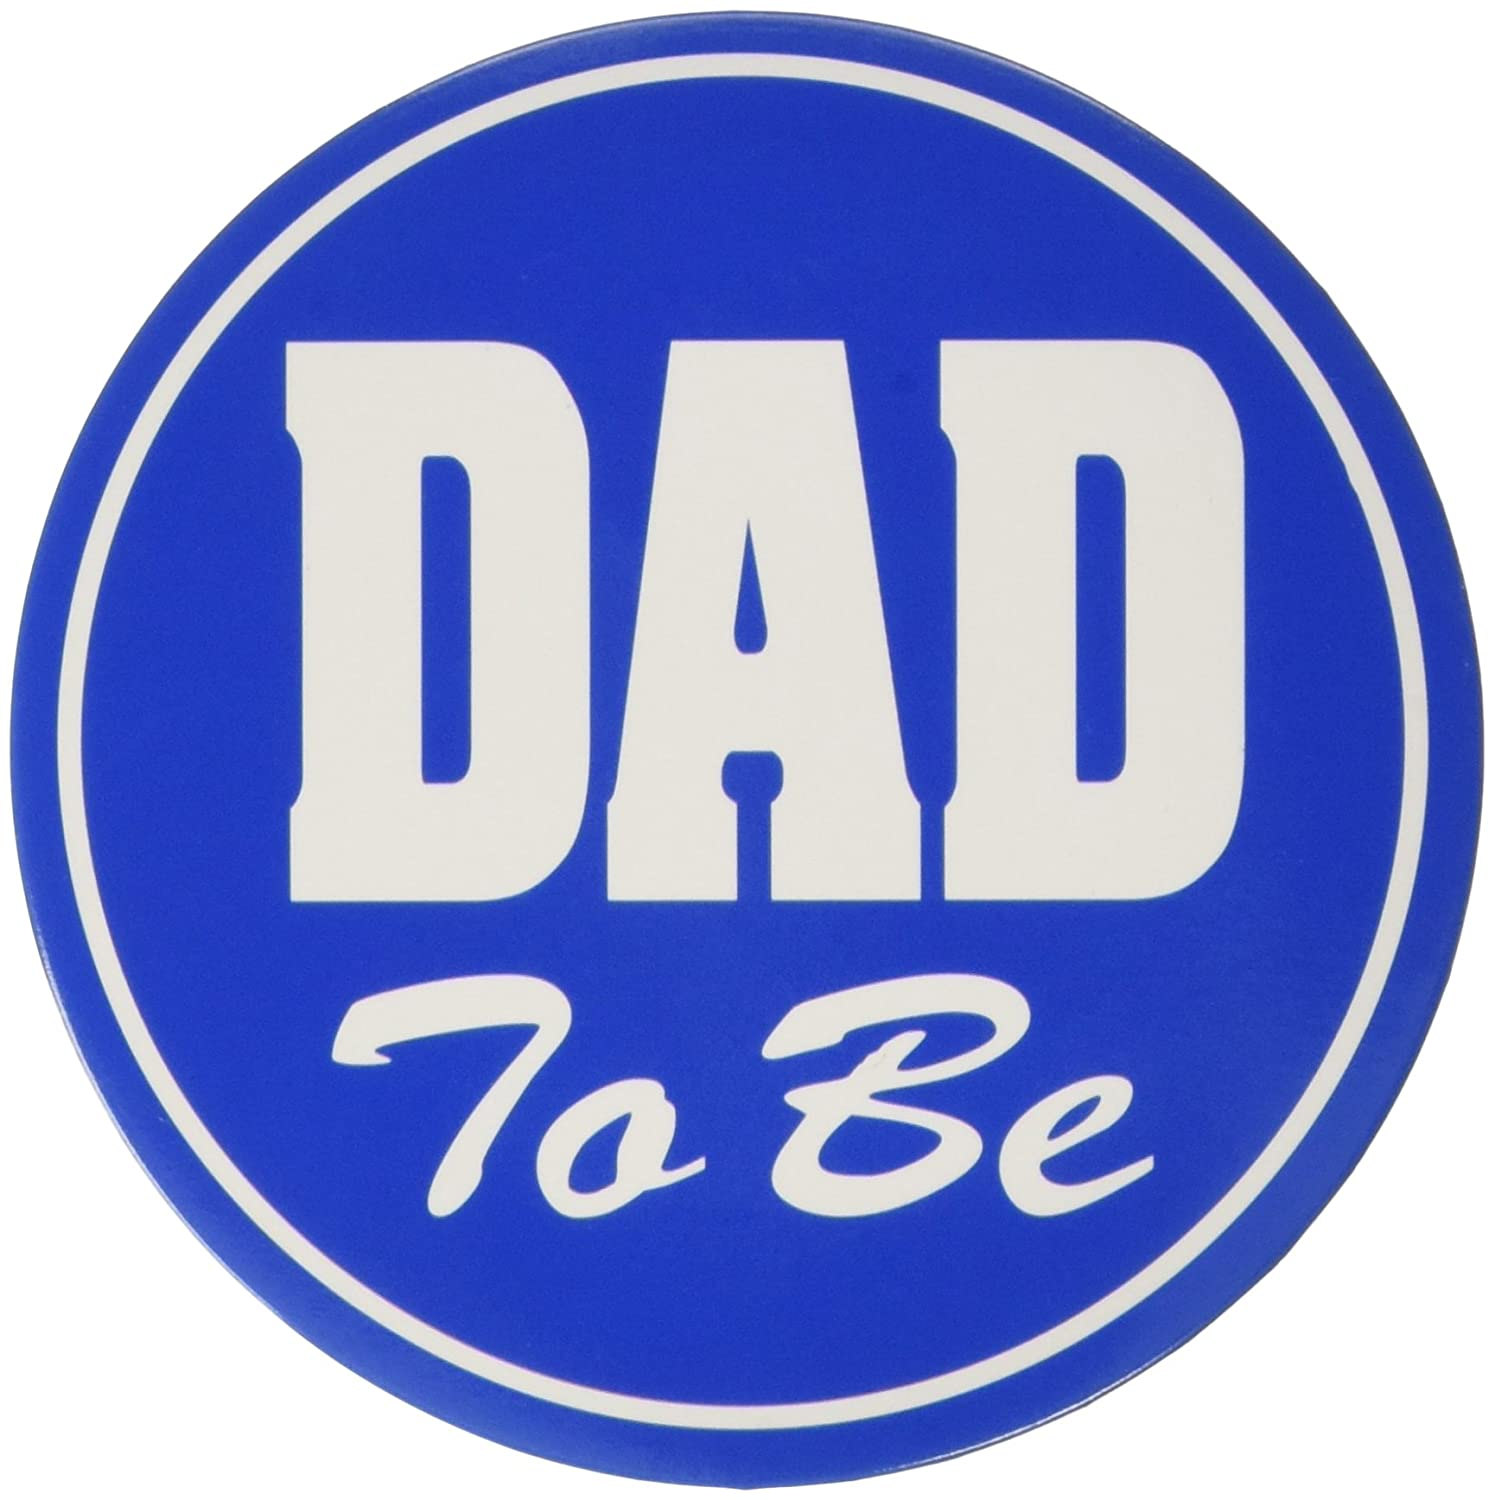 Beistle 60459 Dad to be Button, 3-1/2-Inch The Beistle Company